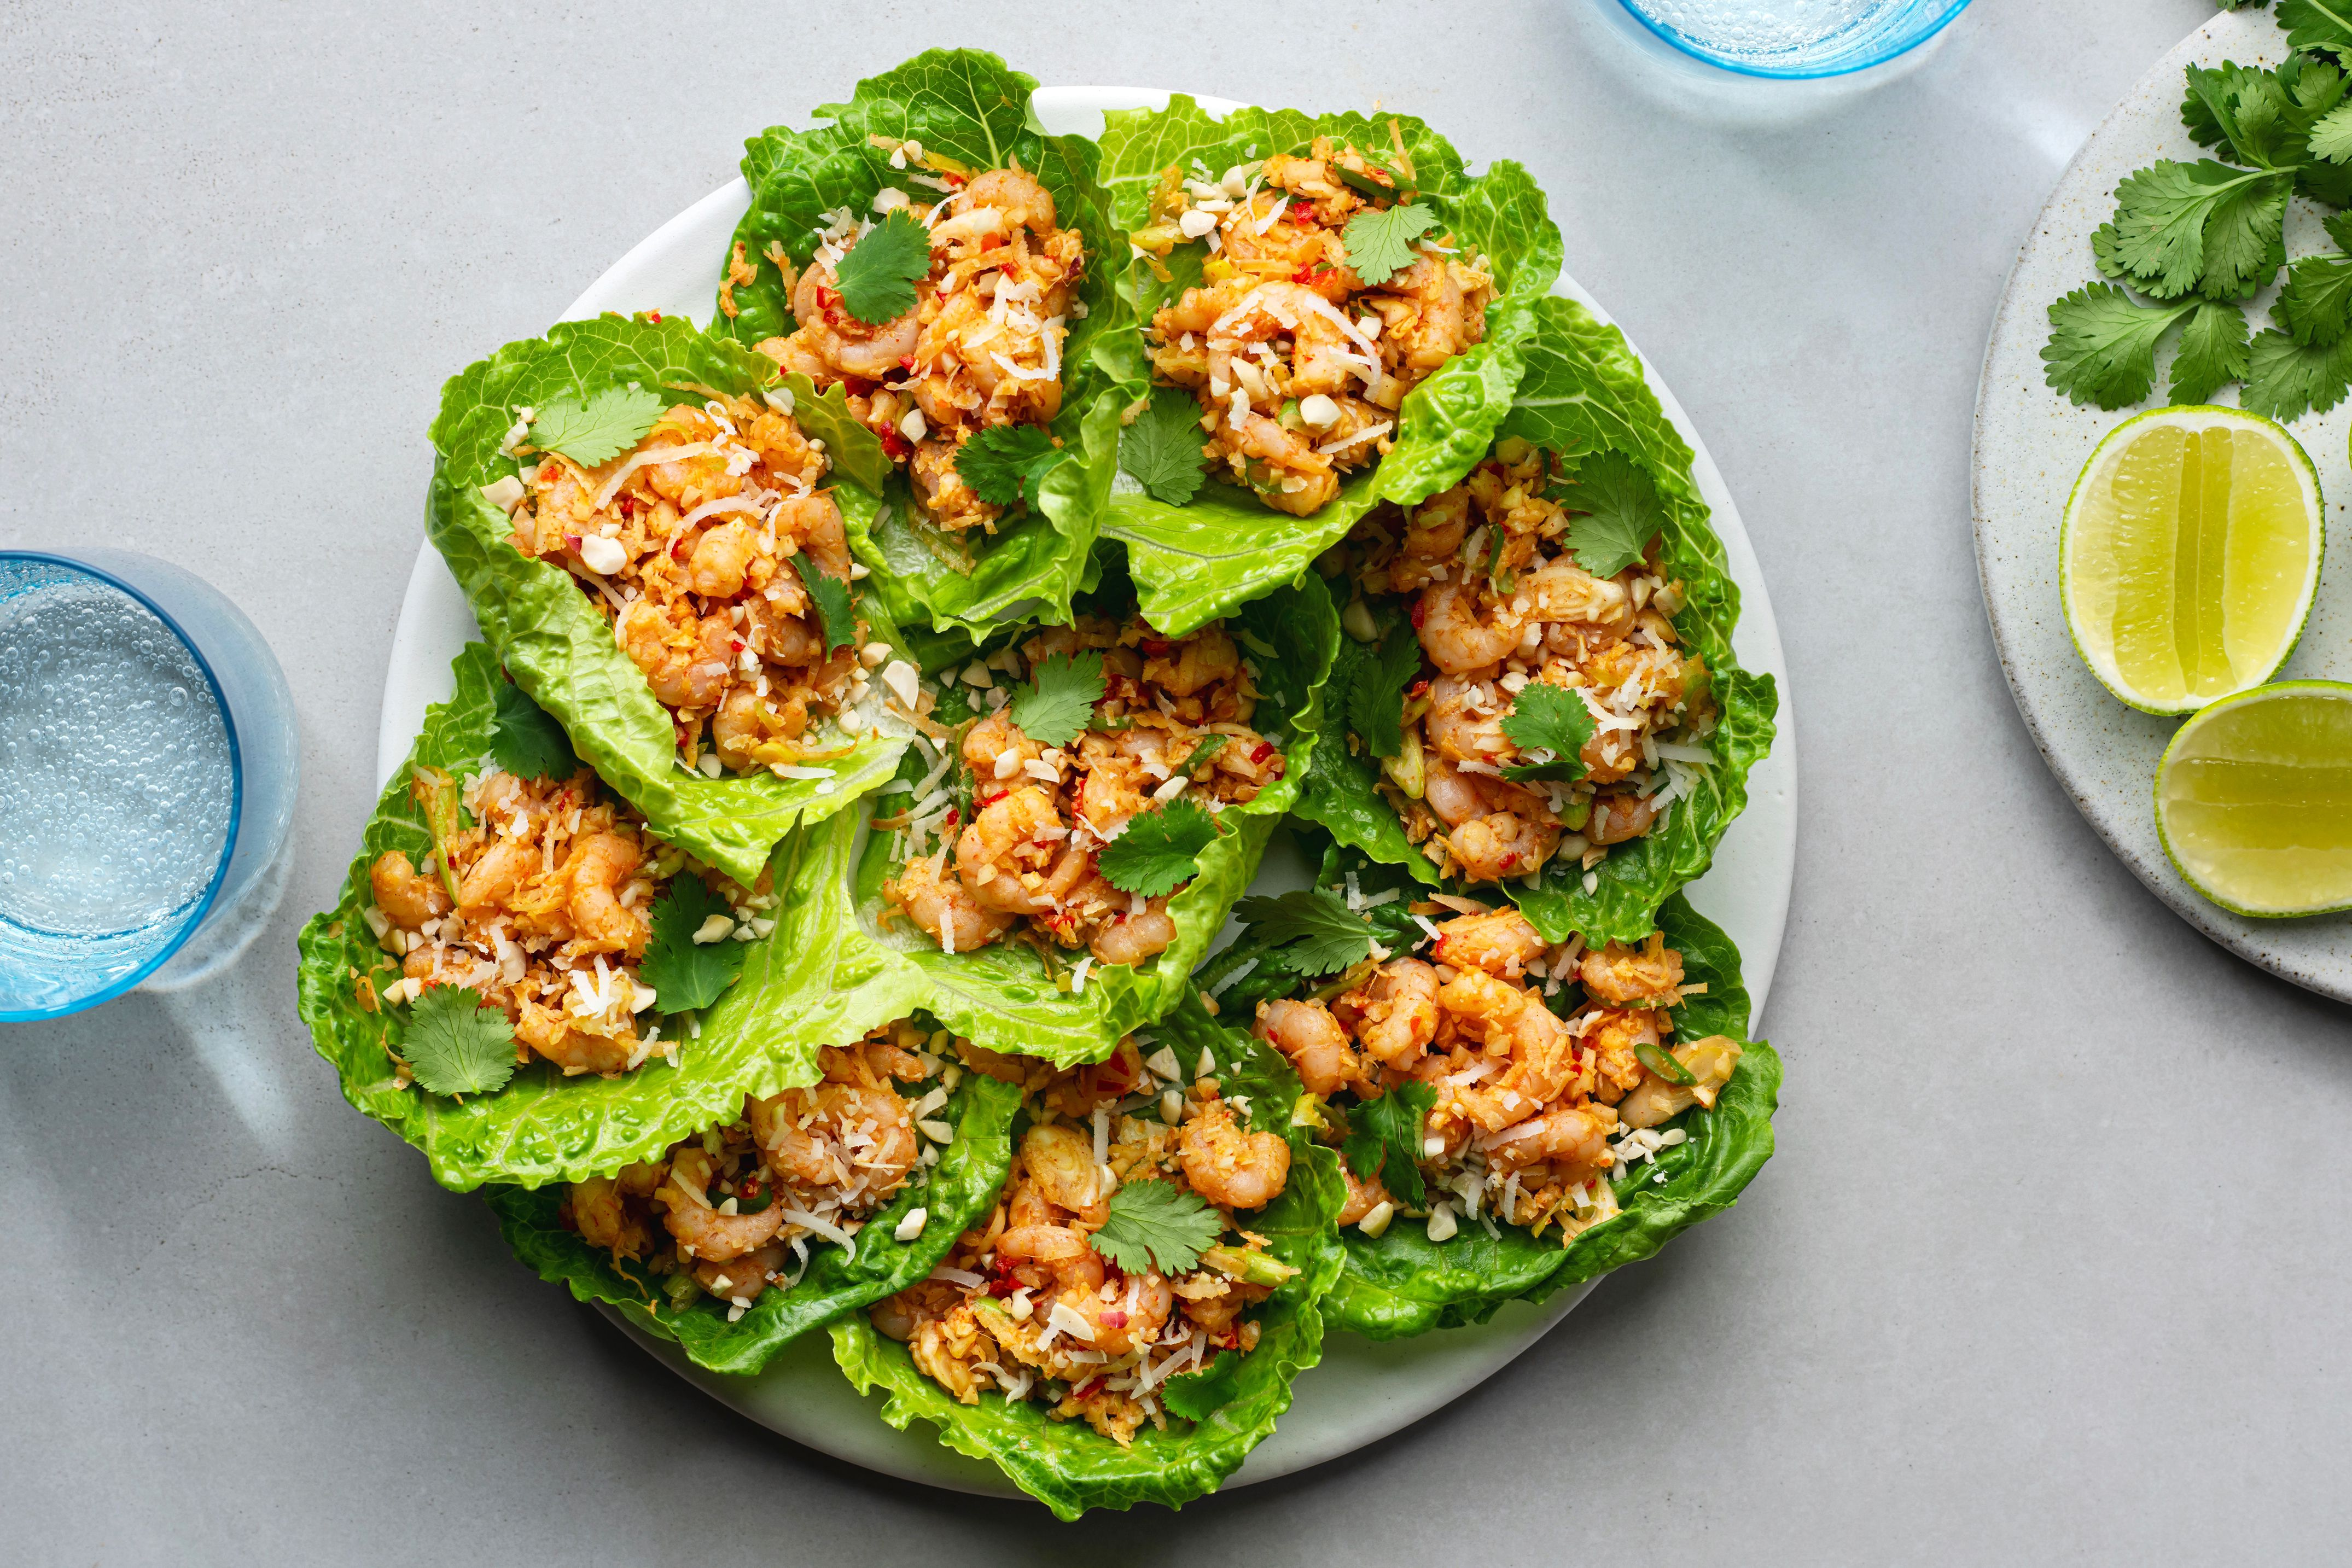 Best Ideas For Quick and Easy Keto Lunches